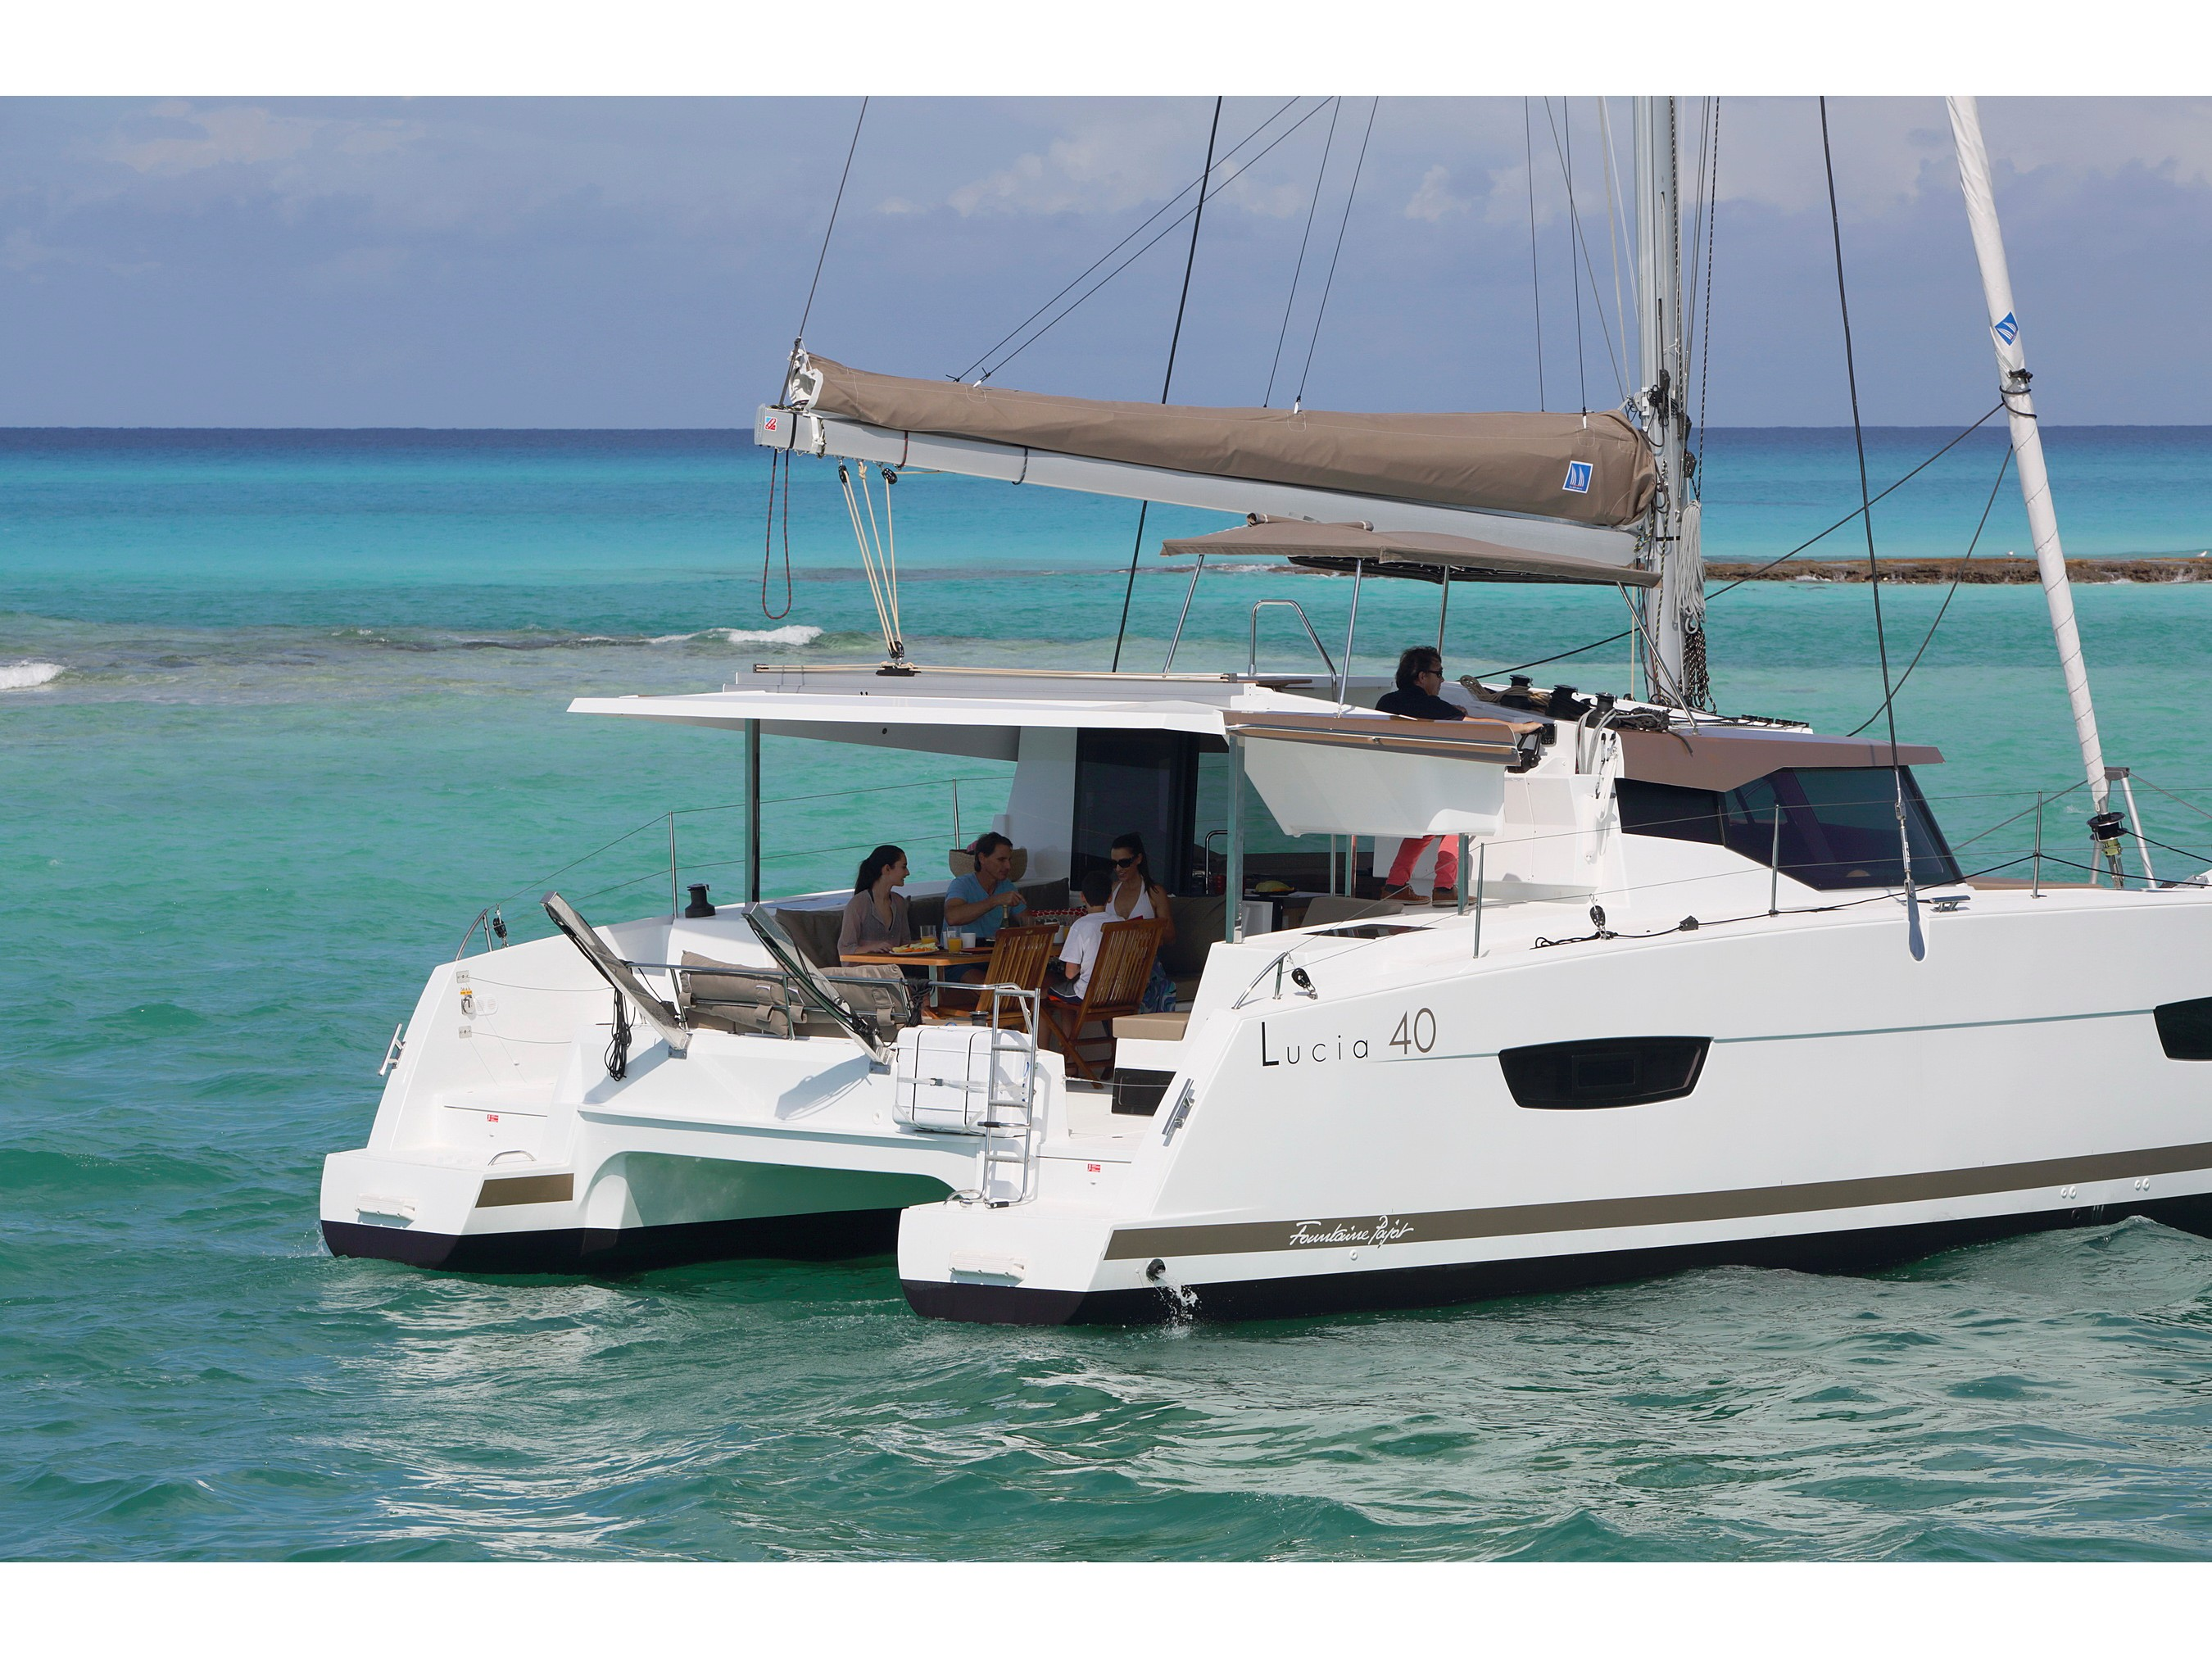 Lucia 40 owner version